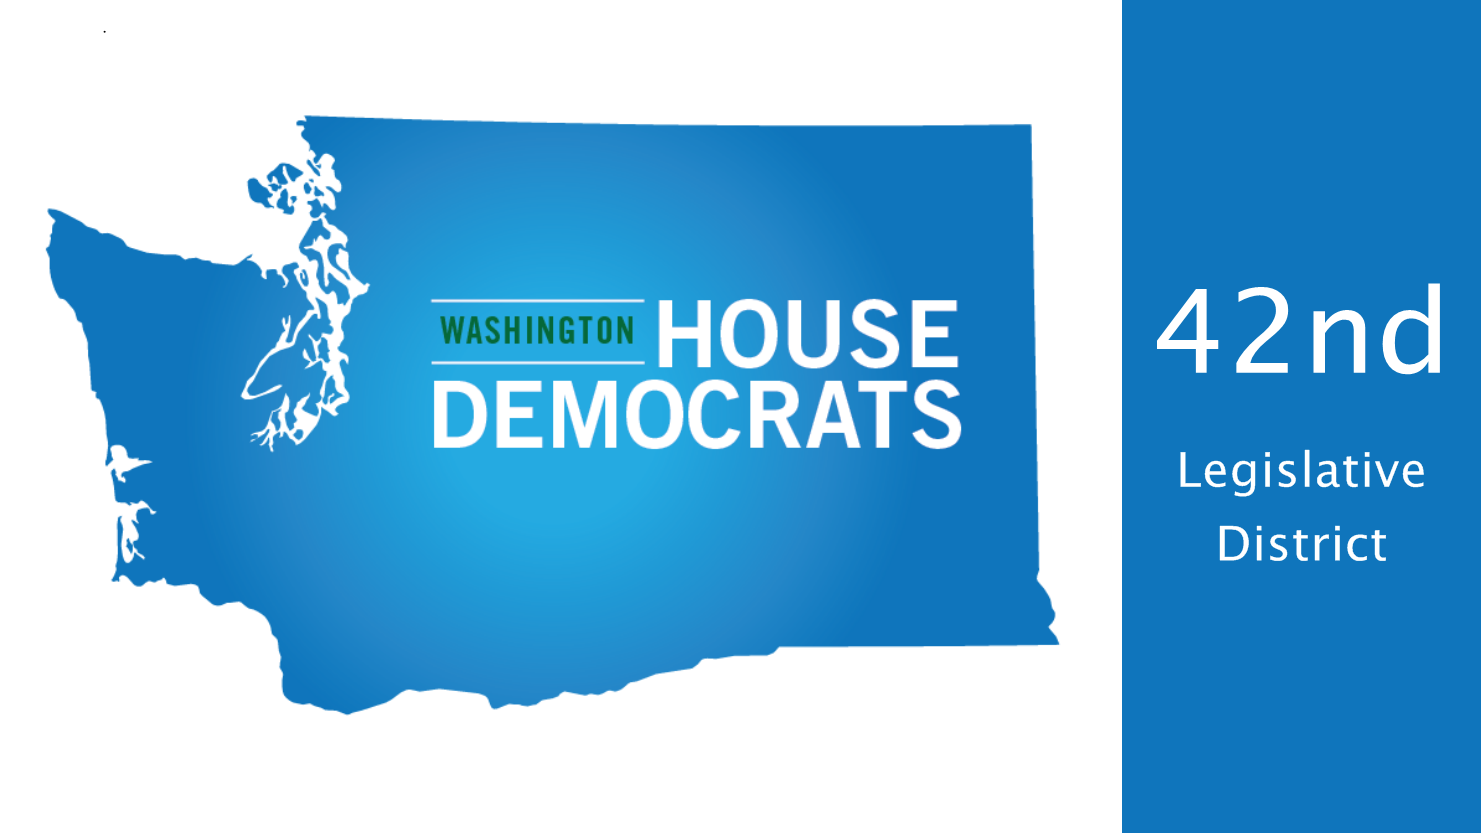 Washington State Legislative District 42